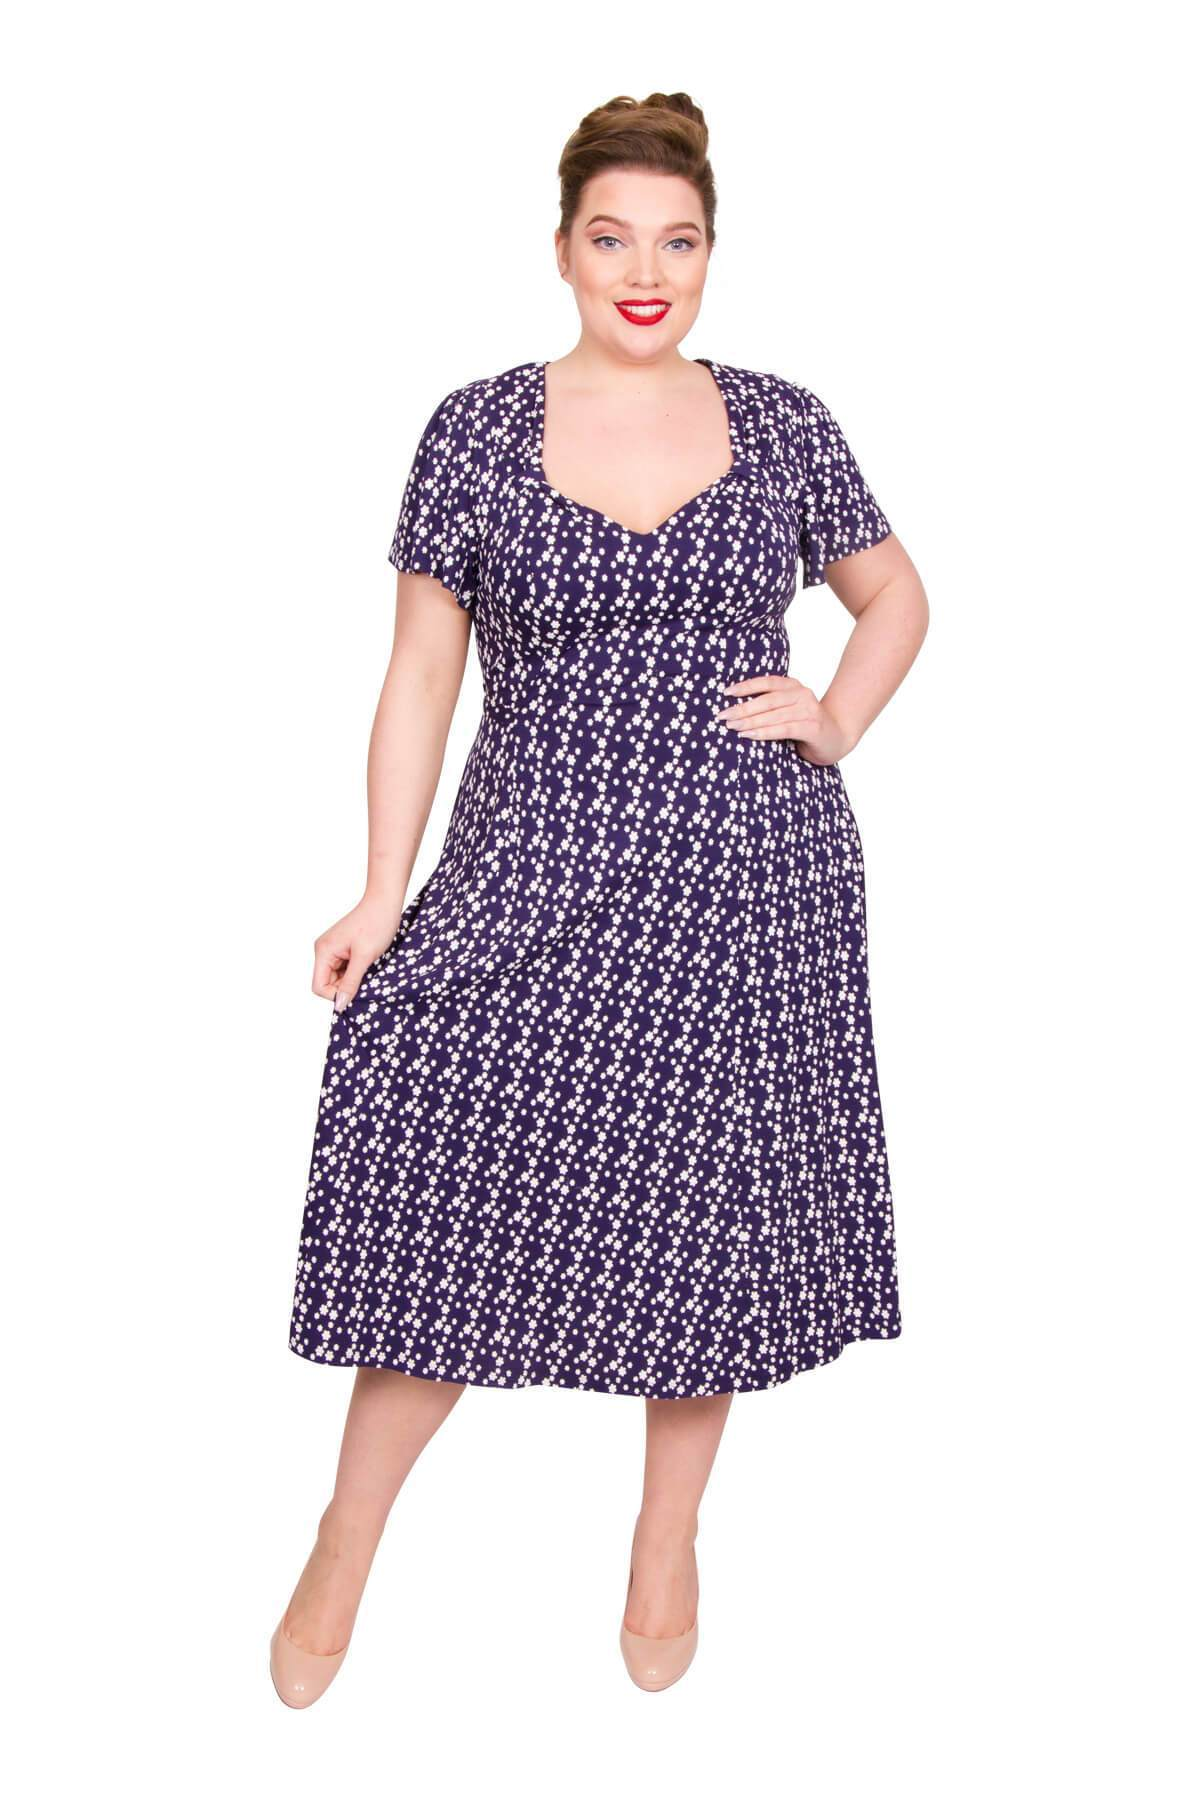 Swing Dance Clothing You Can Dance In Floral Star 40s Dress - BLUEWHITE  20 £50.00 AT vintagedancer.com